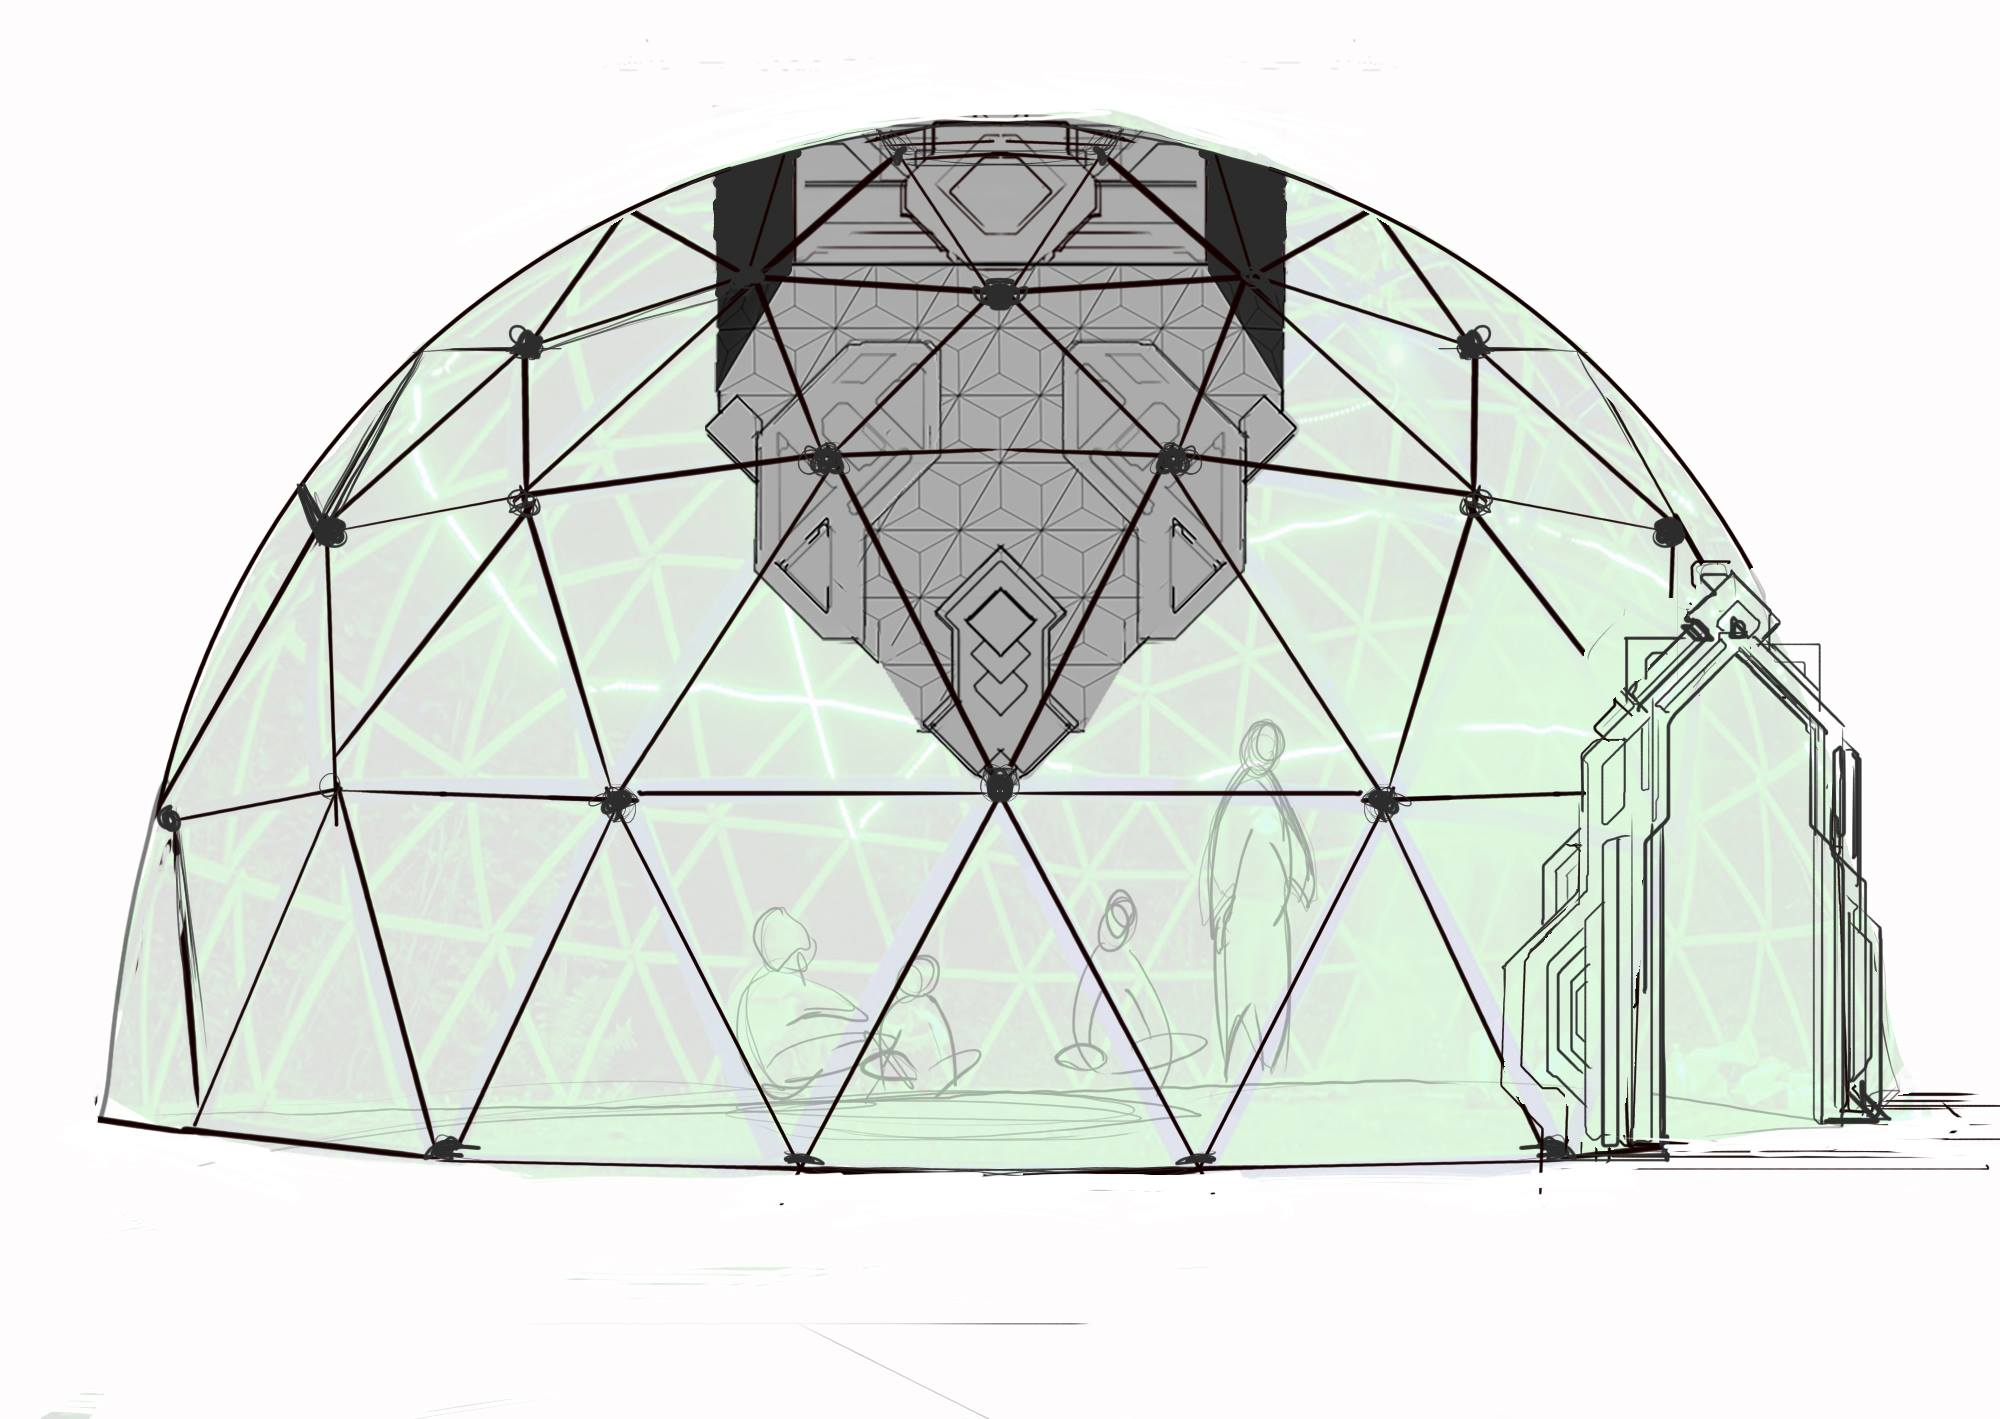 Dome concept with hanging LED lamp structure